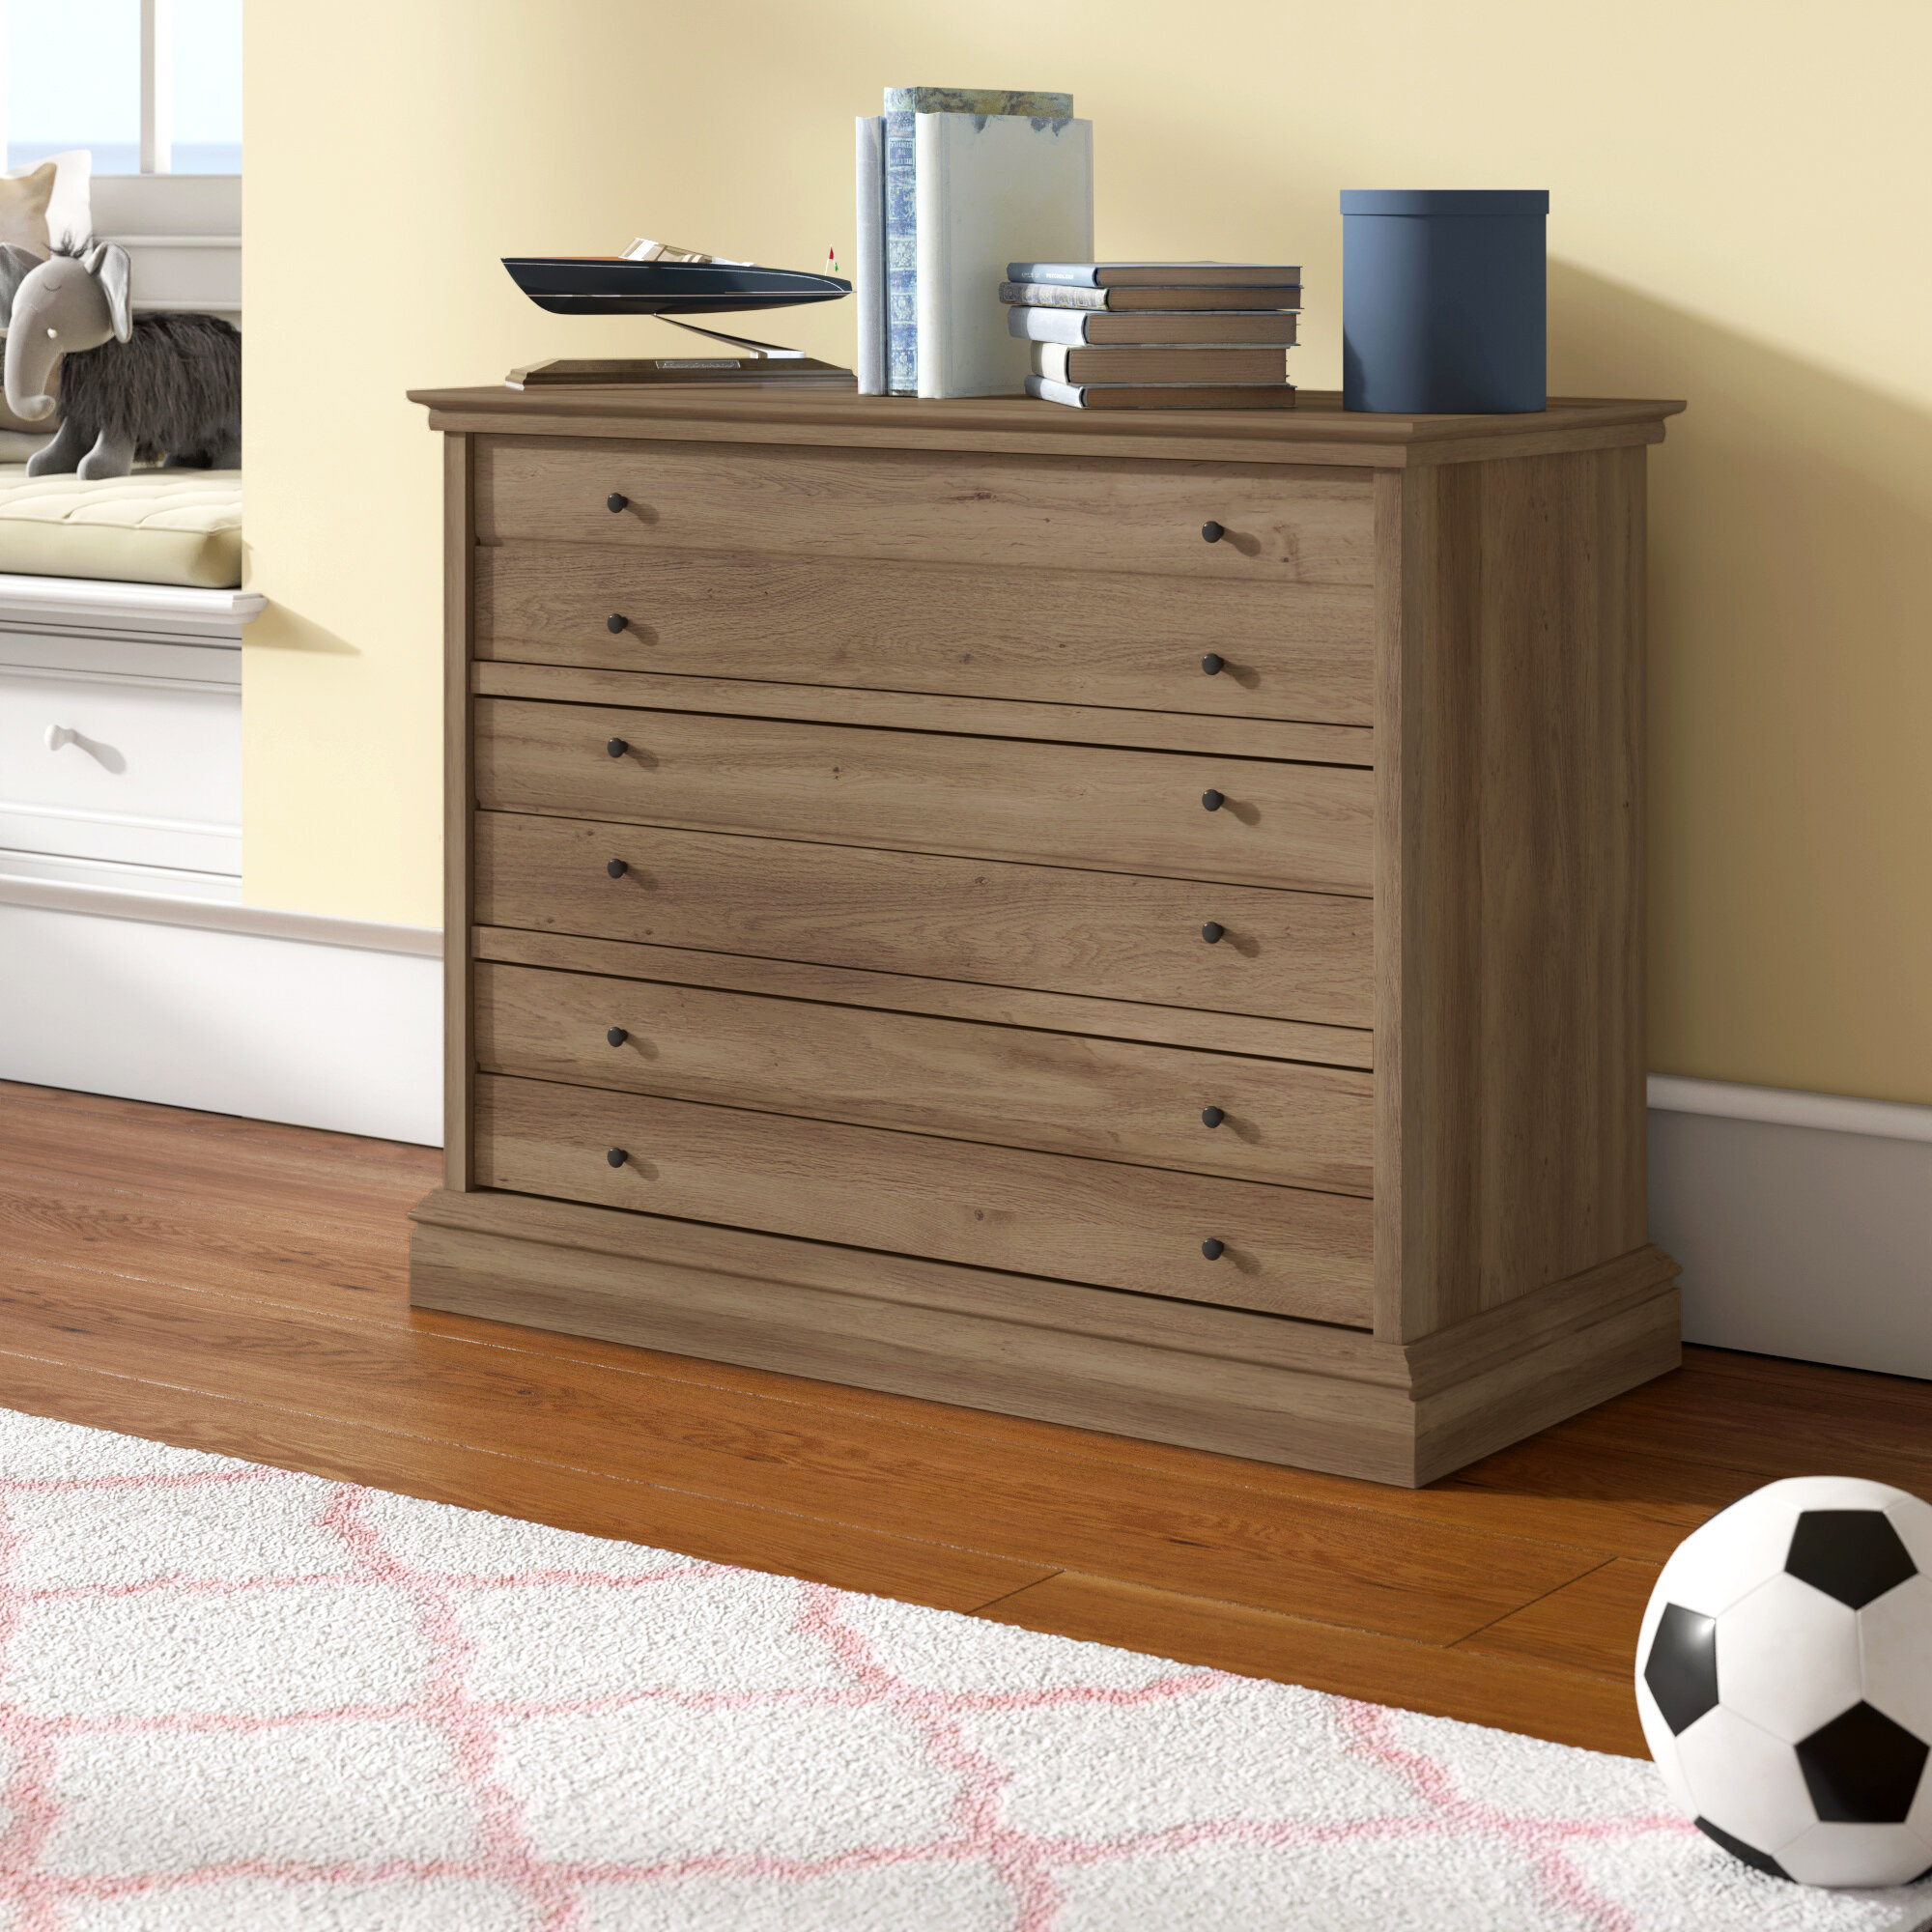 Wayfair S Picks For College3 Drawer Dressers Chests You Ll Love In 2021 Wayfair